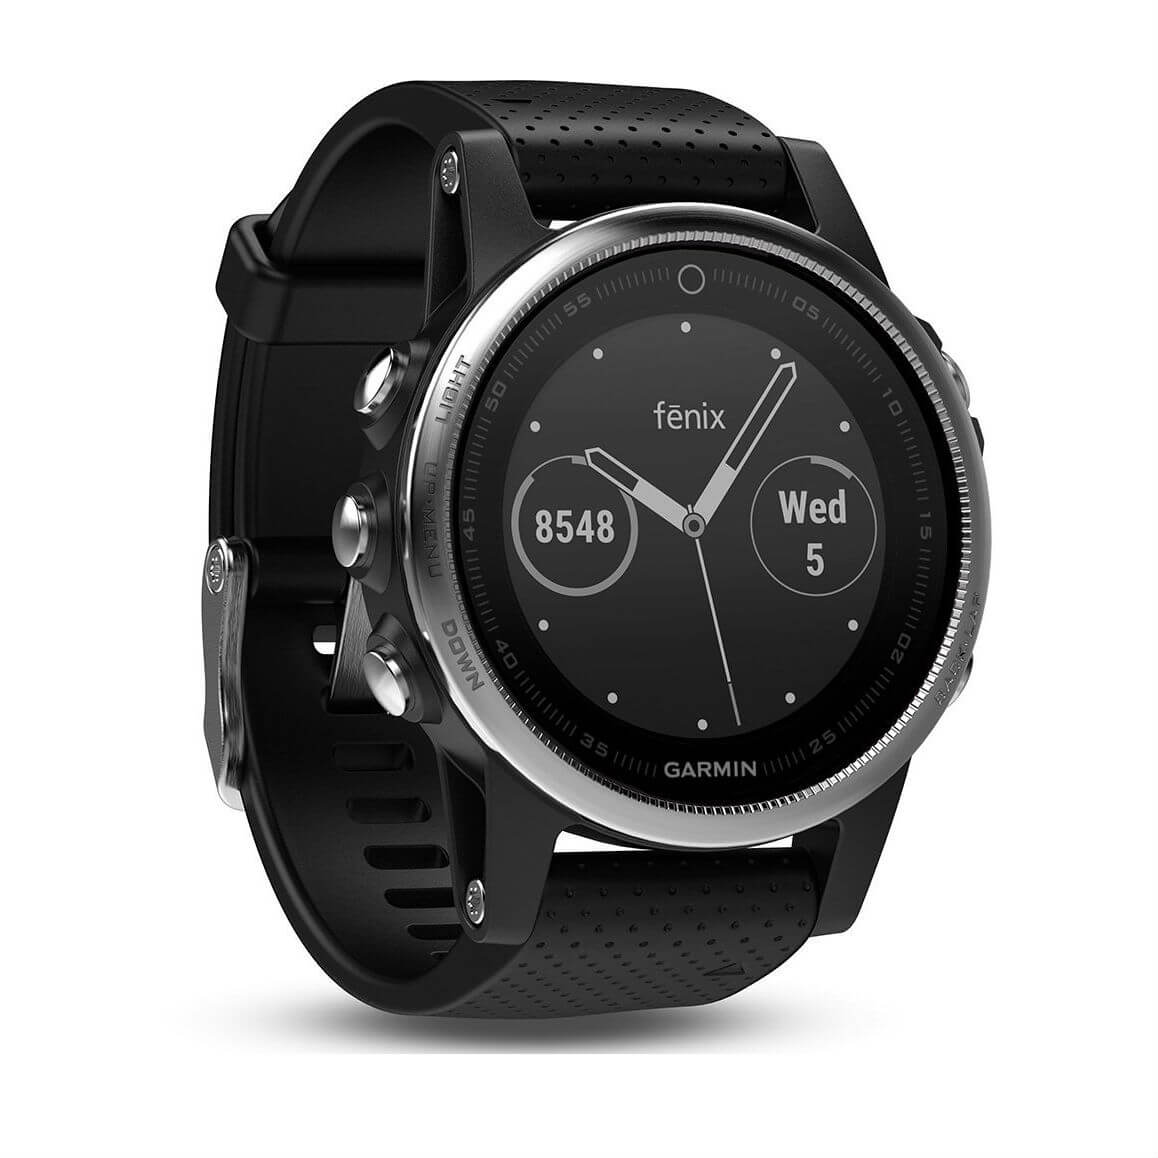 wearables watches lg us thumbnail buttonthumbnail p garmin en rf fenix